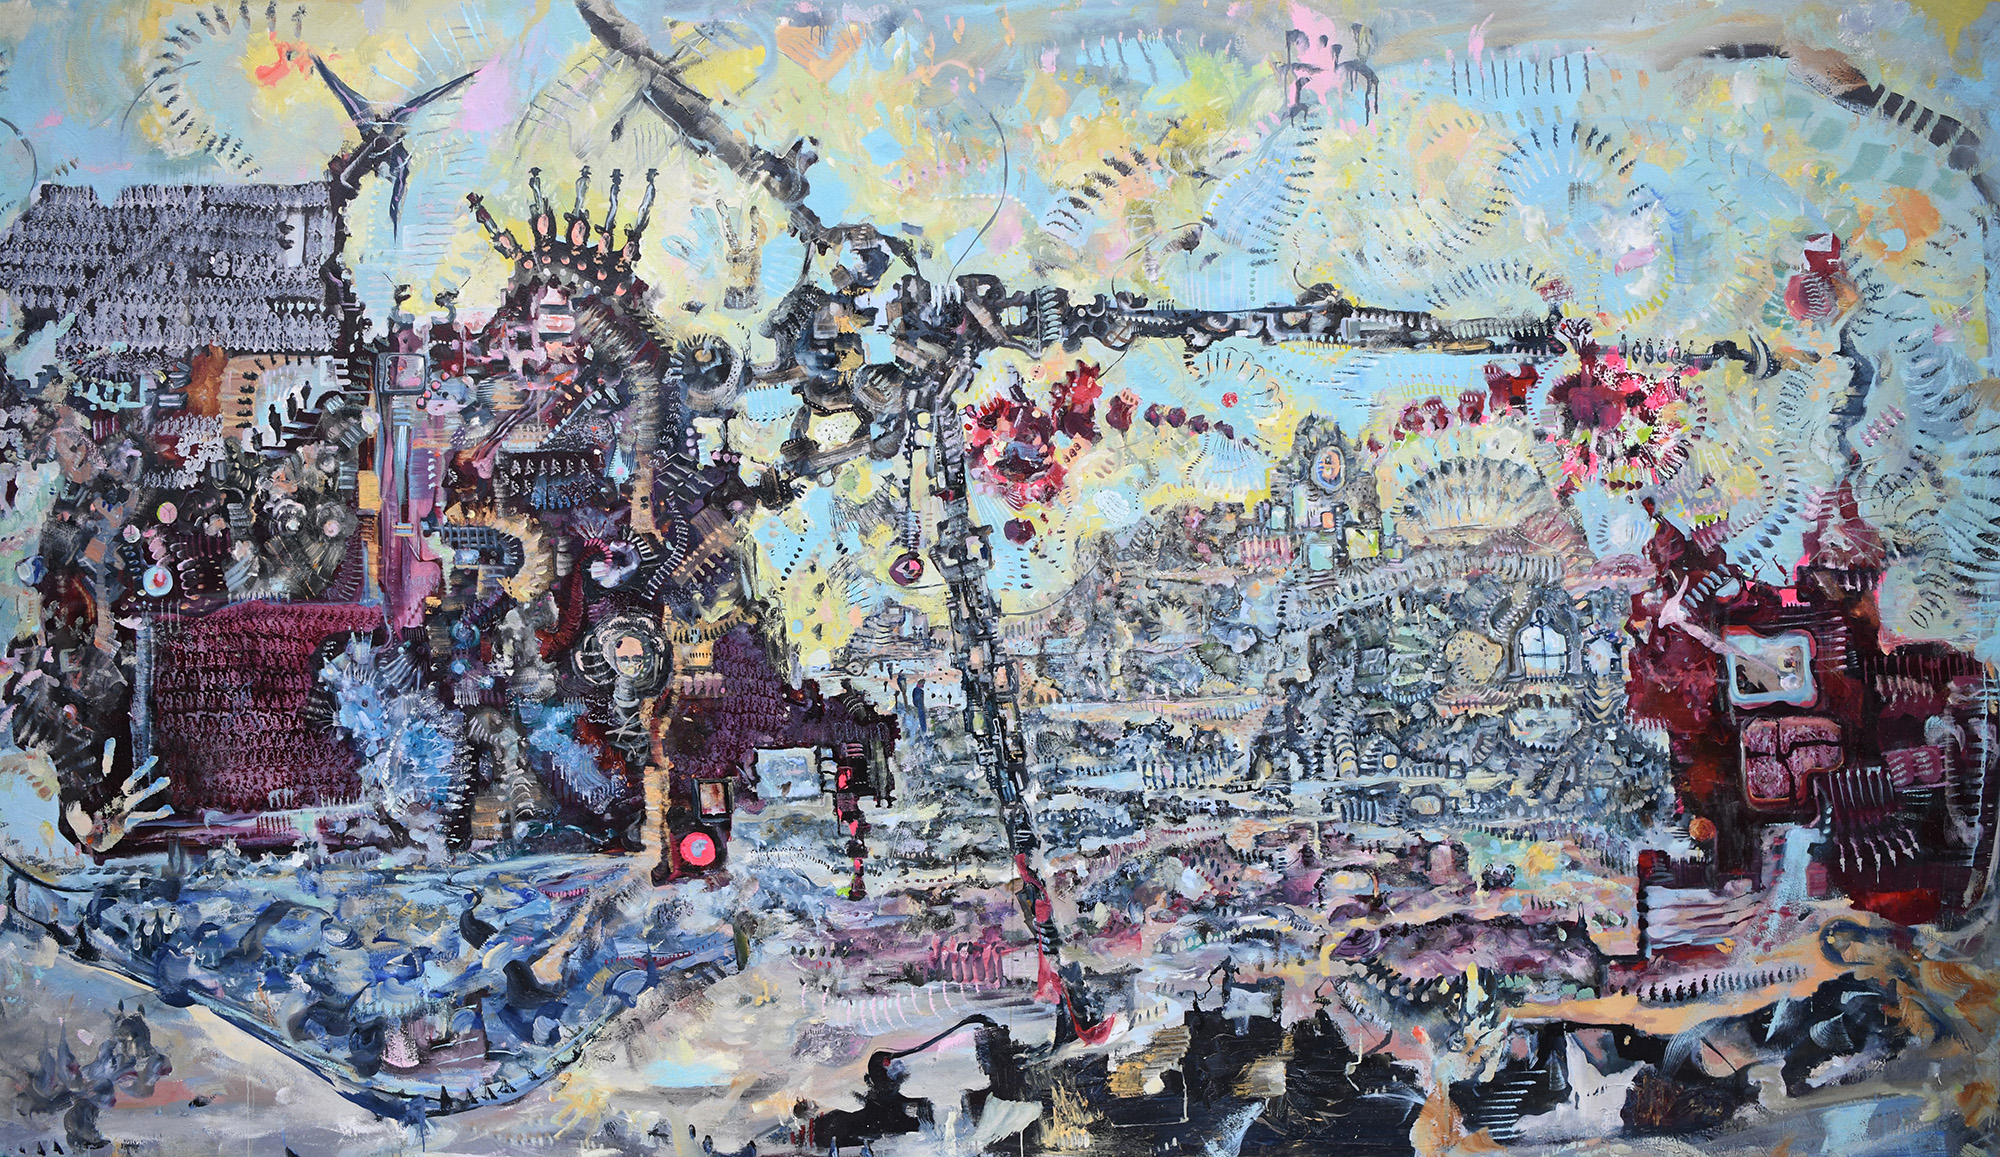 [fig 1] James Yakimicki , Manhattan Projection (Prentis Hall) , 2010. Oil on canvas, 144 x 86 inches.